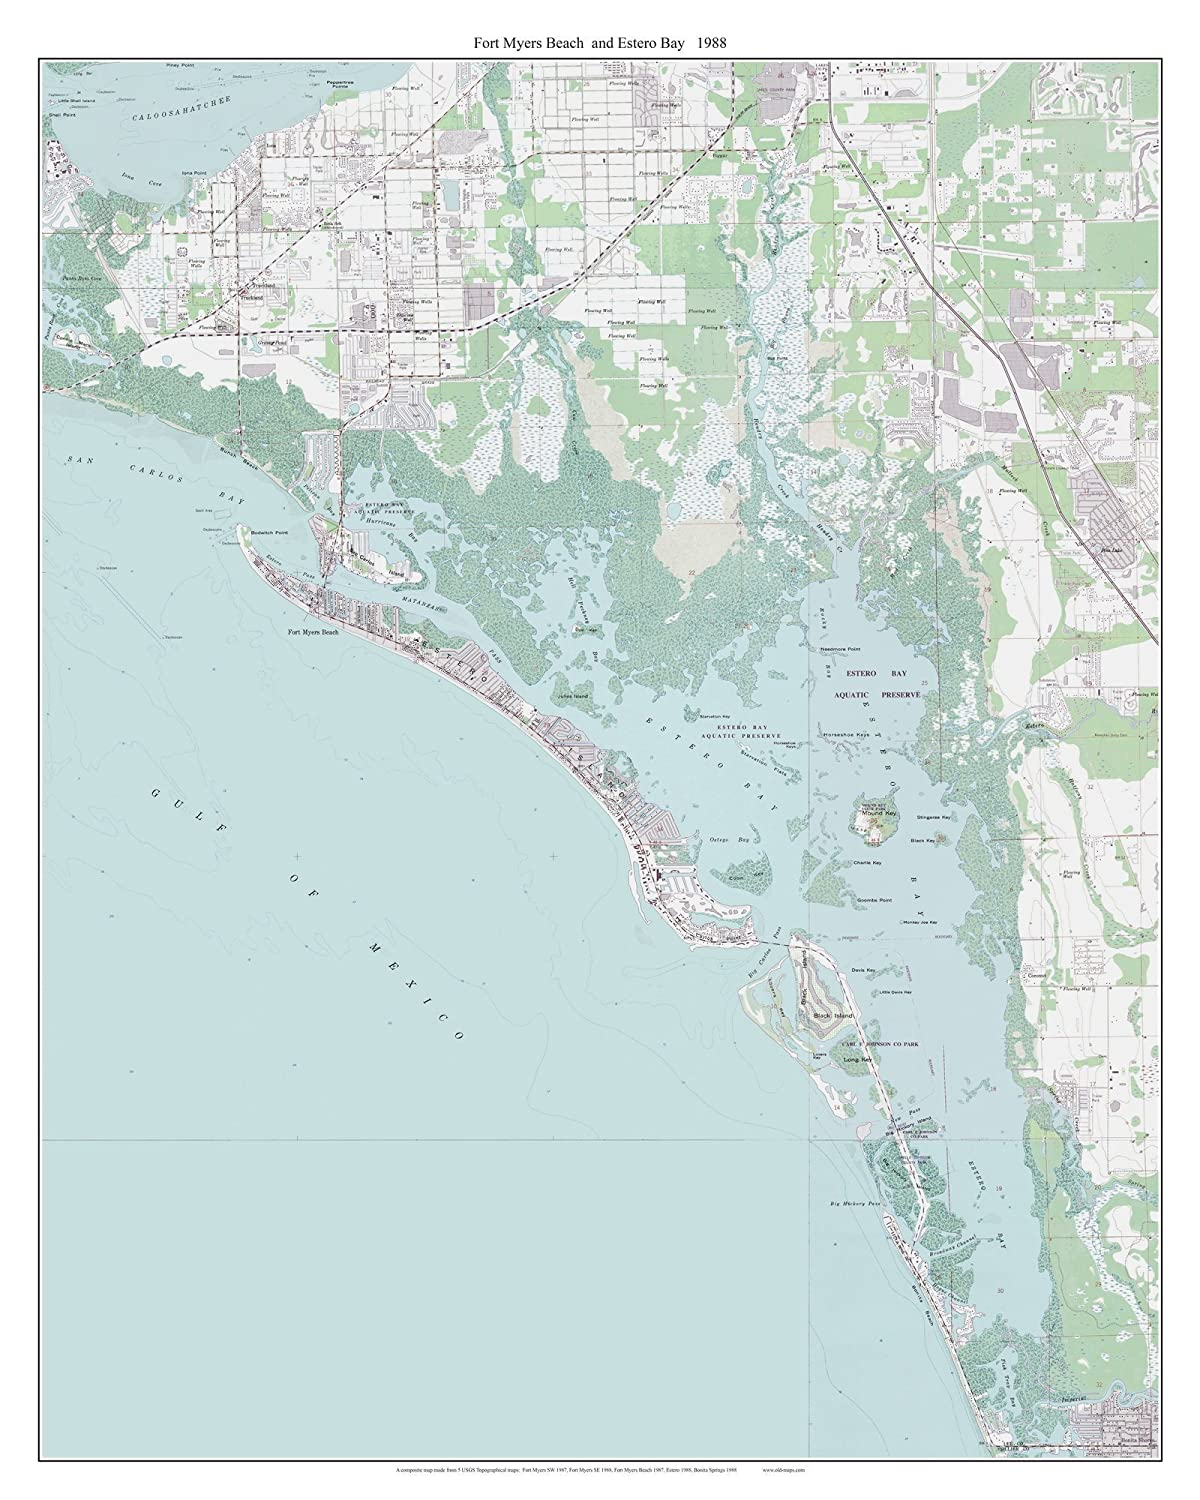 Amazon.com: Fort Myers Beach and Estero Bay, Florida 1988 Topo Map ...